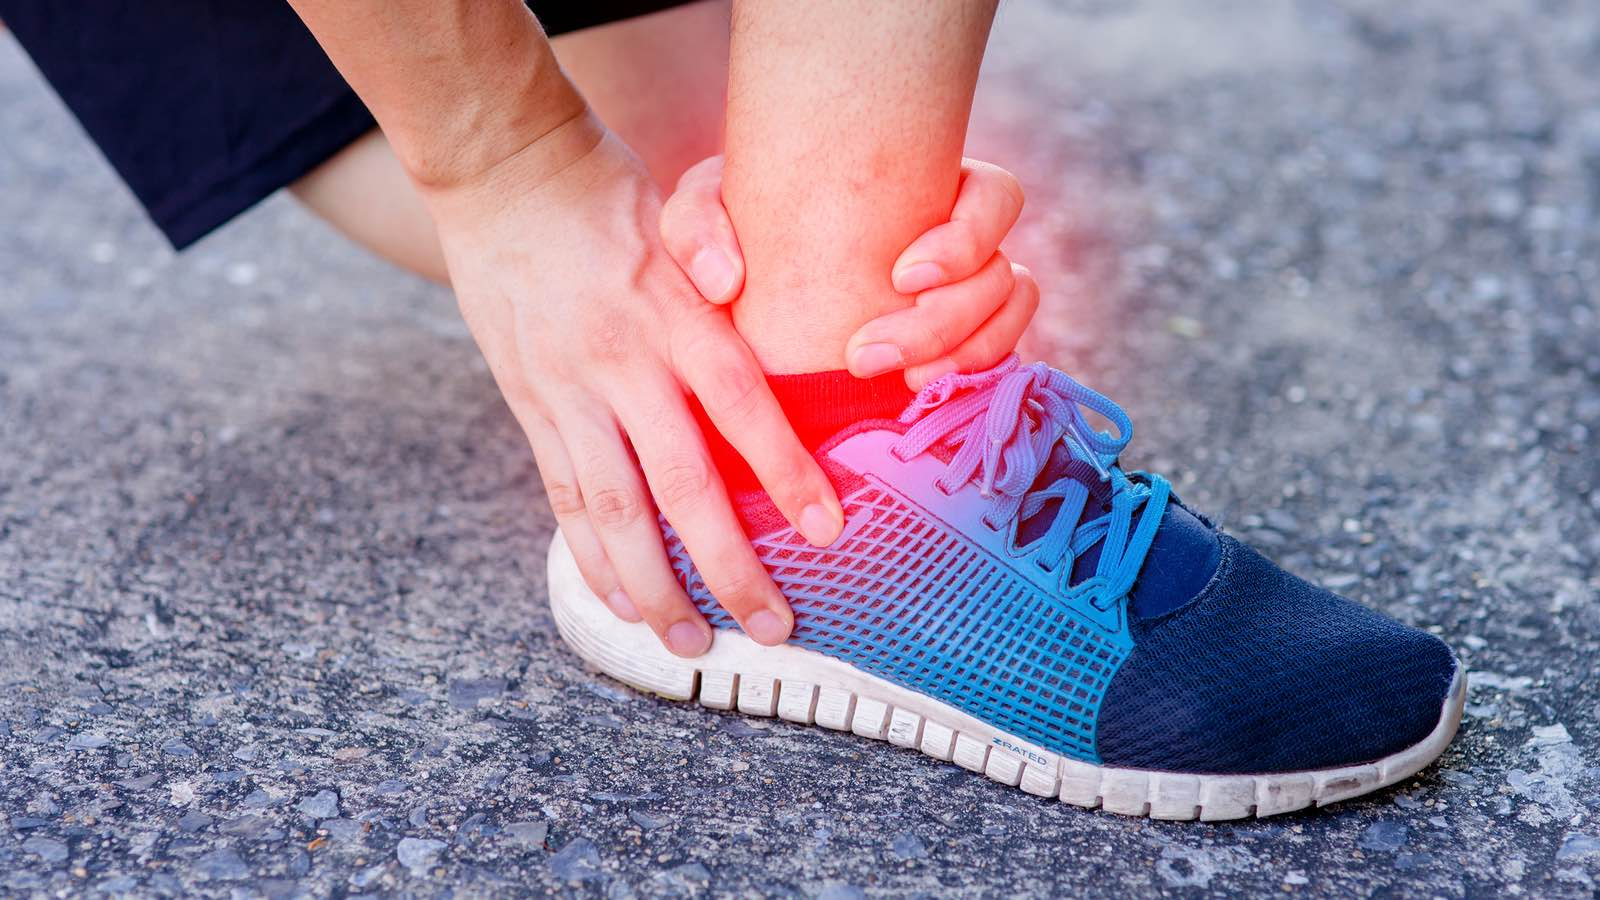 Chronic Ankle Instability Risk Identification : How to identify and prevent chronic ankle instability after an ankle sprain